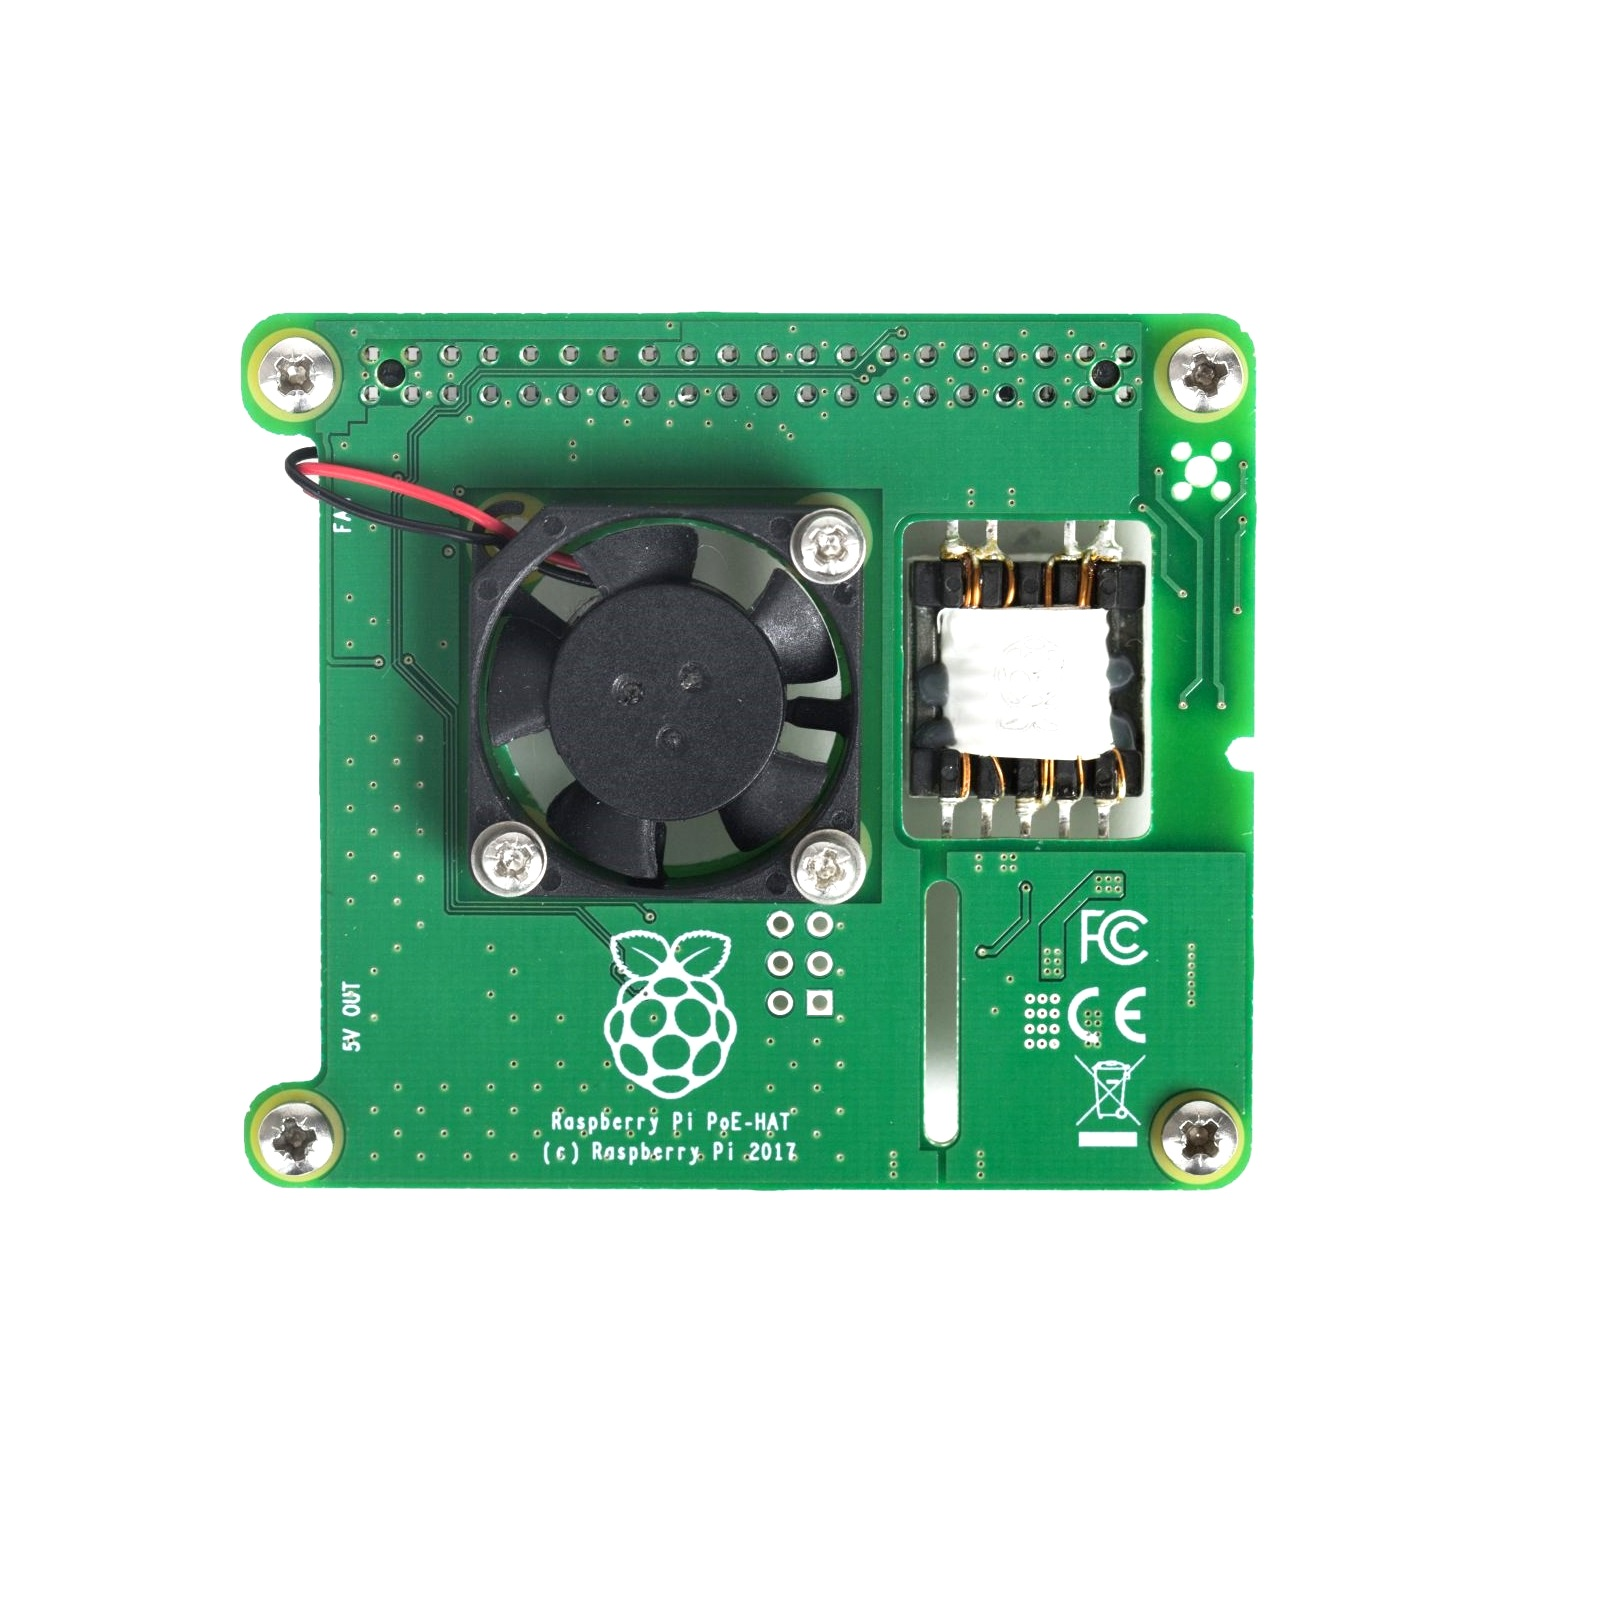 Power Over Ethernet (PoE) HAT for Raspberry Pi 3 B+ Model - Robu in |  Indian Online Store | RC Hobby | Robotics